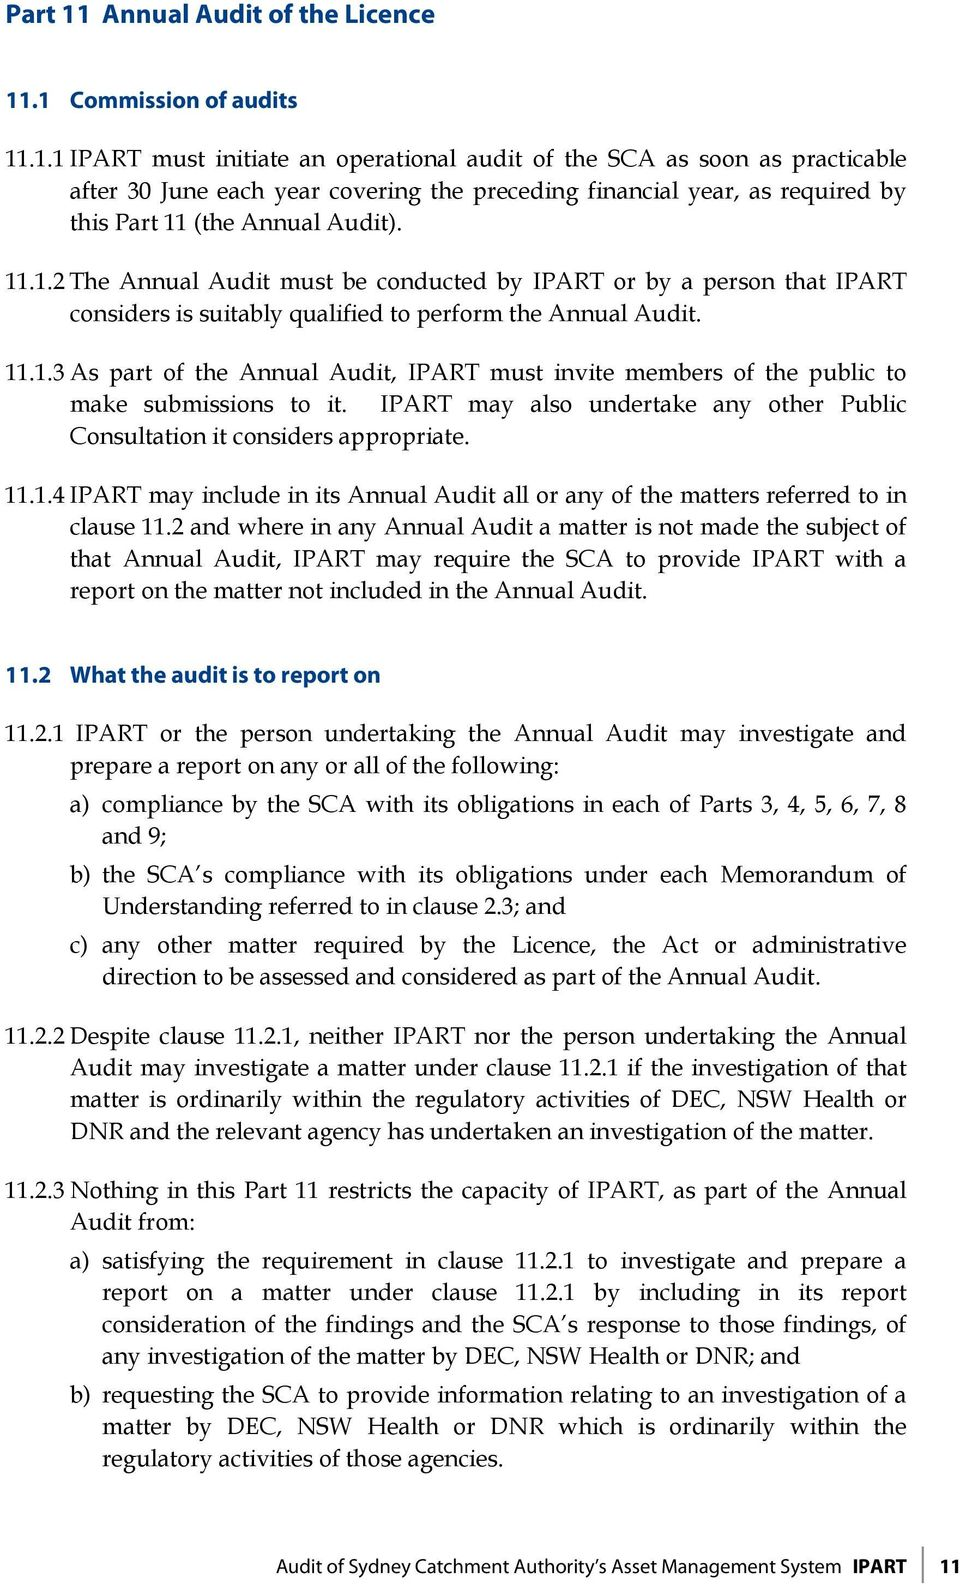 IPART may also undertake any other Public Consultation it considers appropriate. 11.1.4 IPART may include in its Annual Audit all or any of the matters referred to in clause 11.